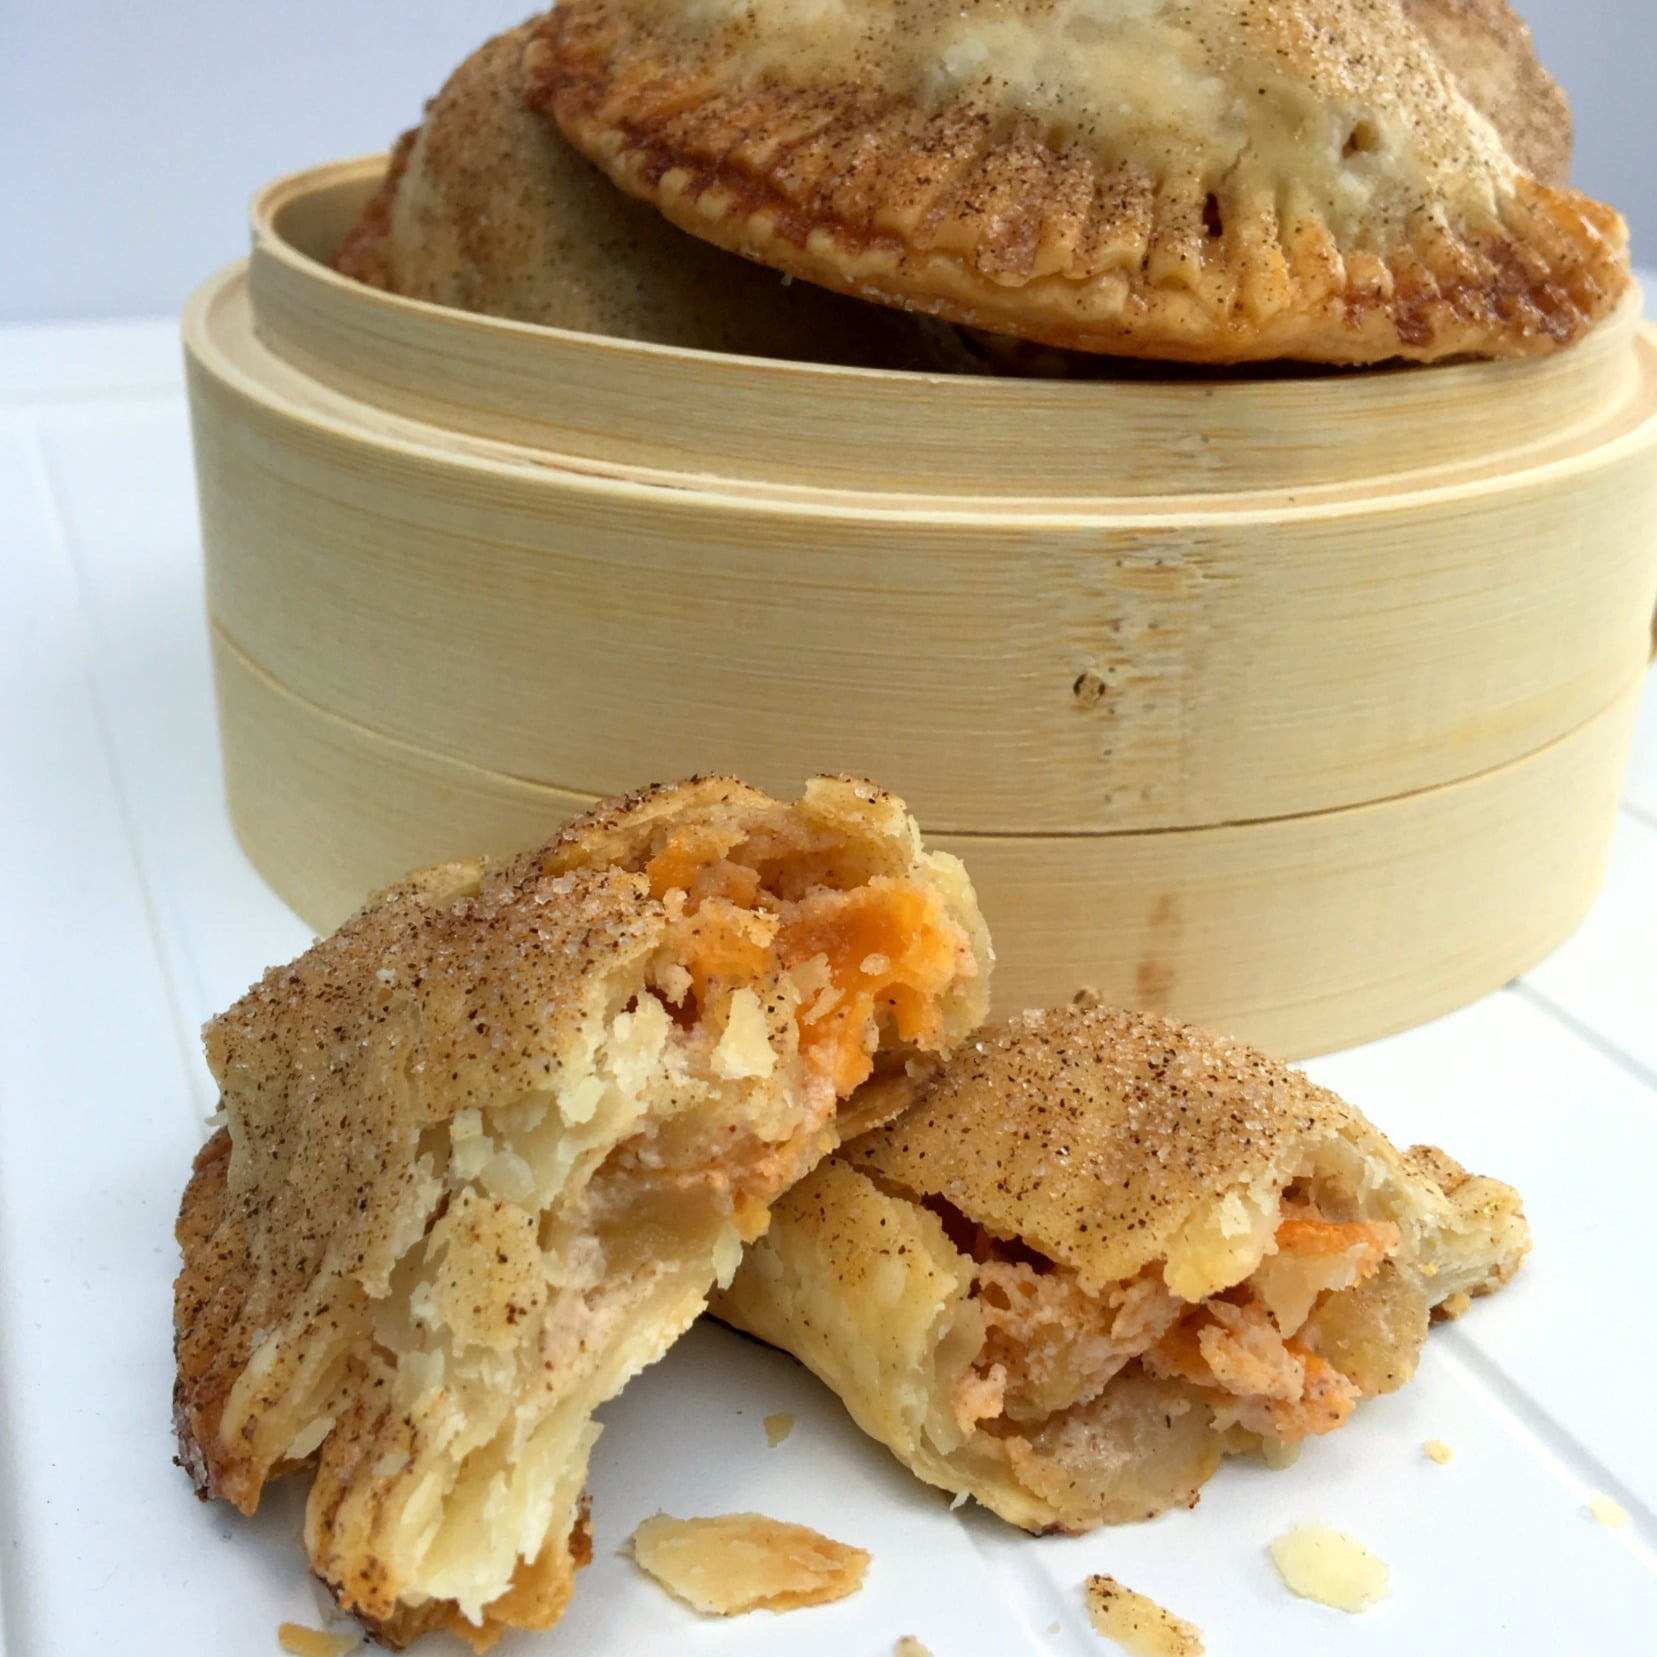 Apple pie, Apple cheddar pie, Apple hand pies, hand pies